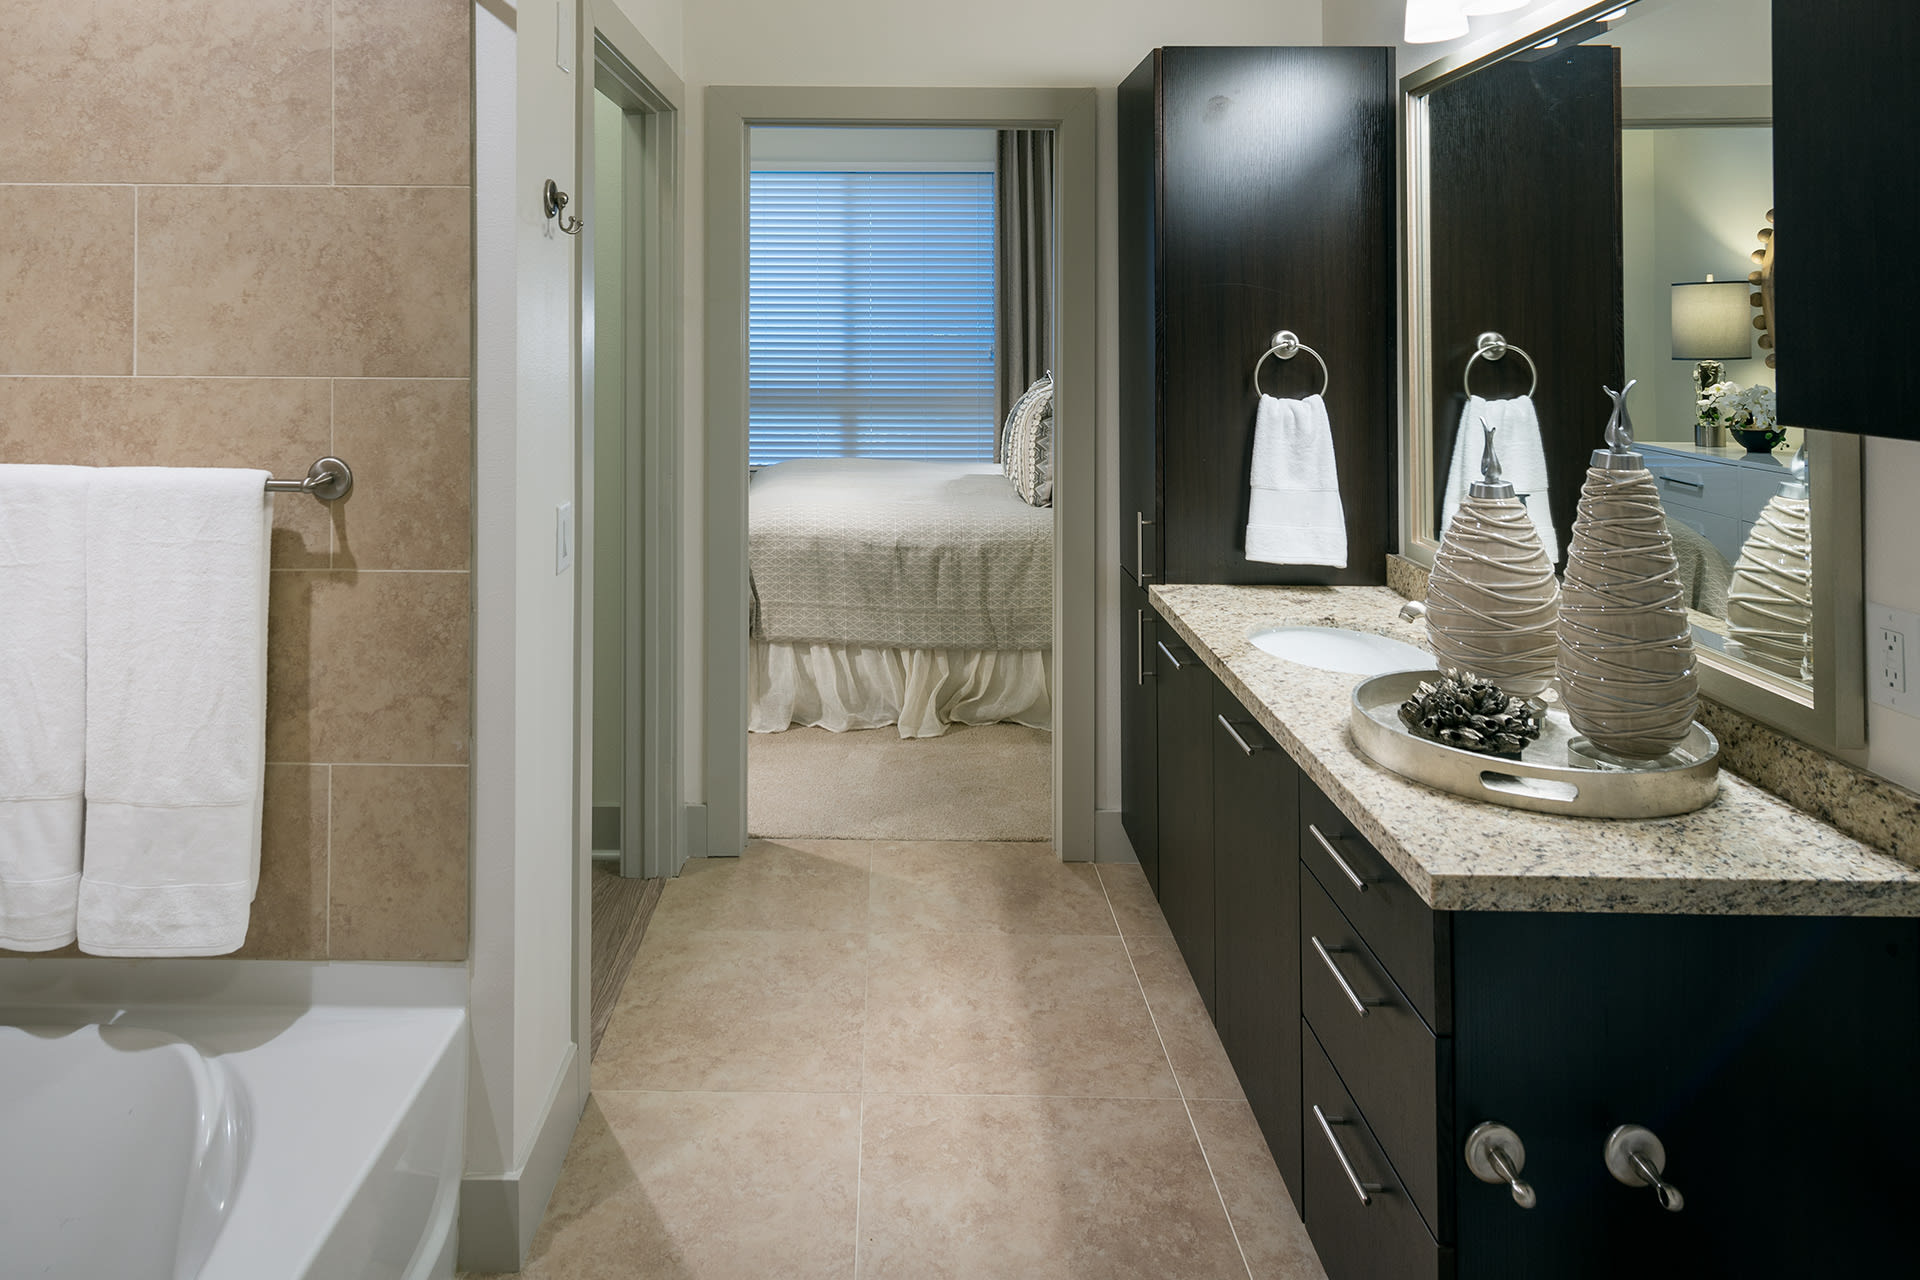 Spa-inspired bathrooms with large soaking tubs at Cannery Park by Windsor, San Jose, California